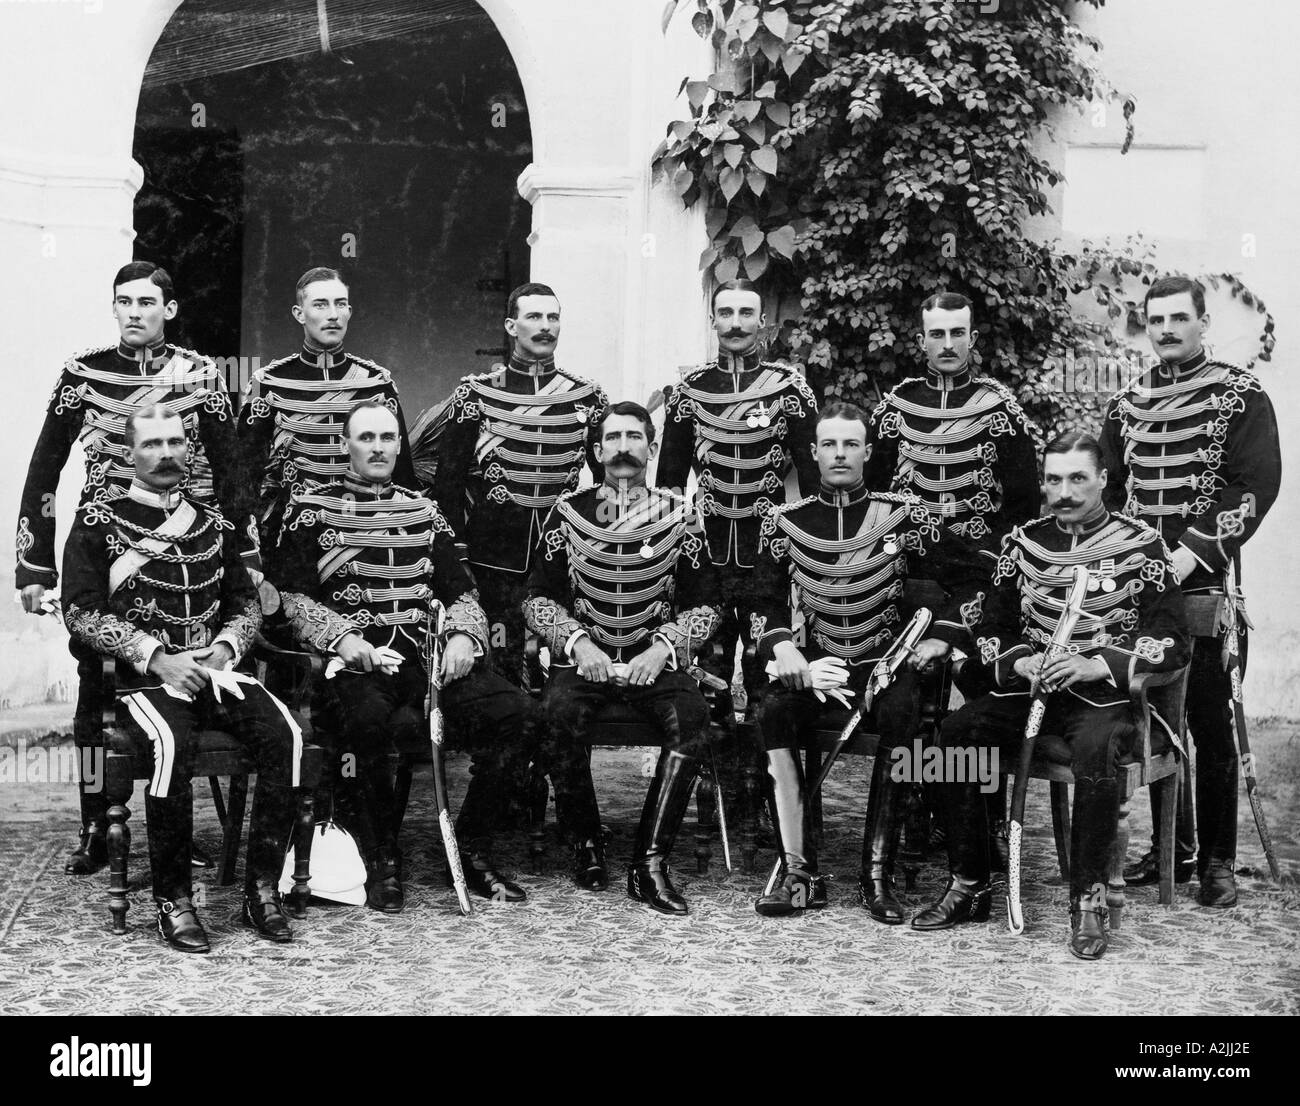 Members of the 25th Cavalry of the British Army in India in 1905 - Stock Image